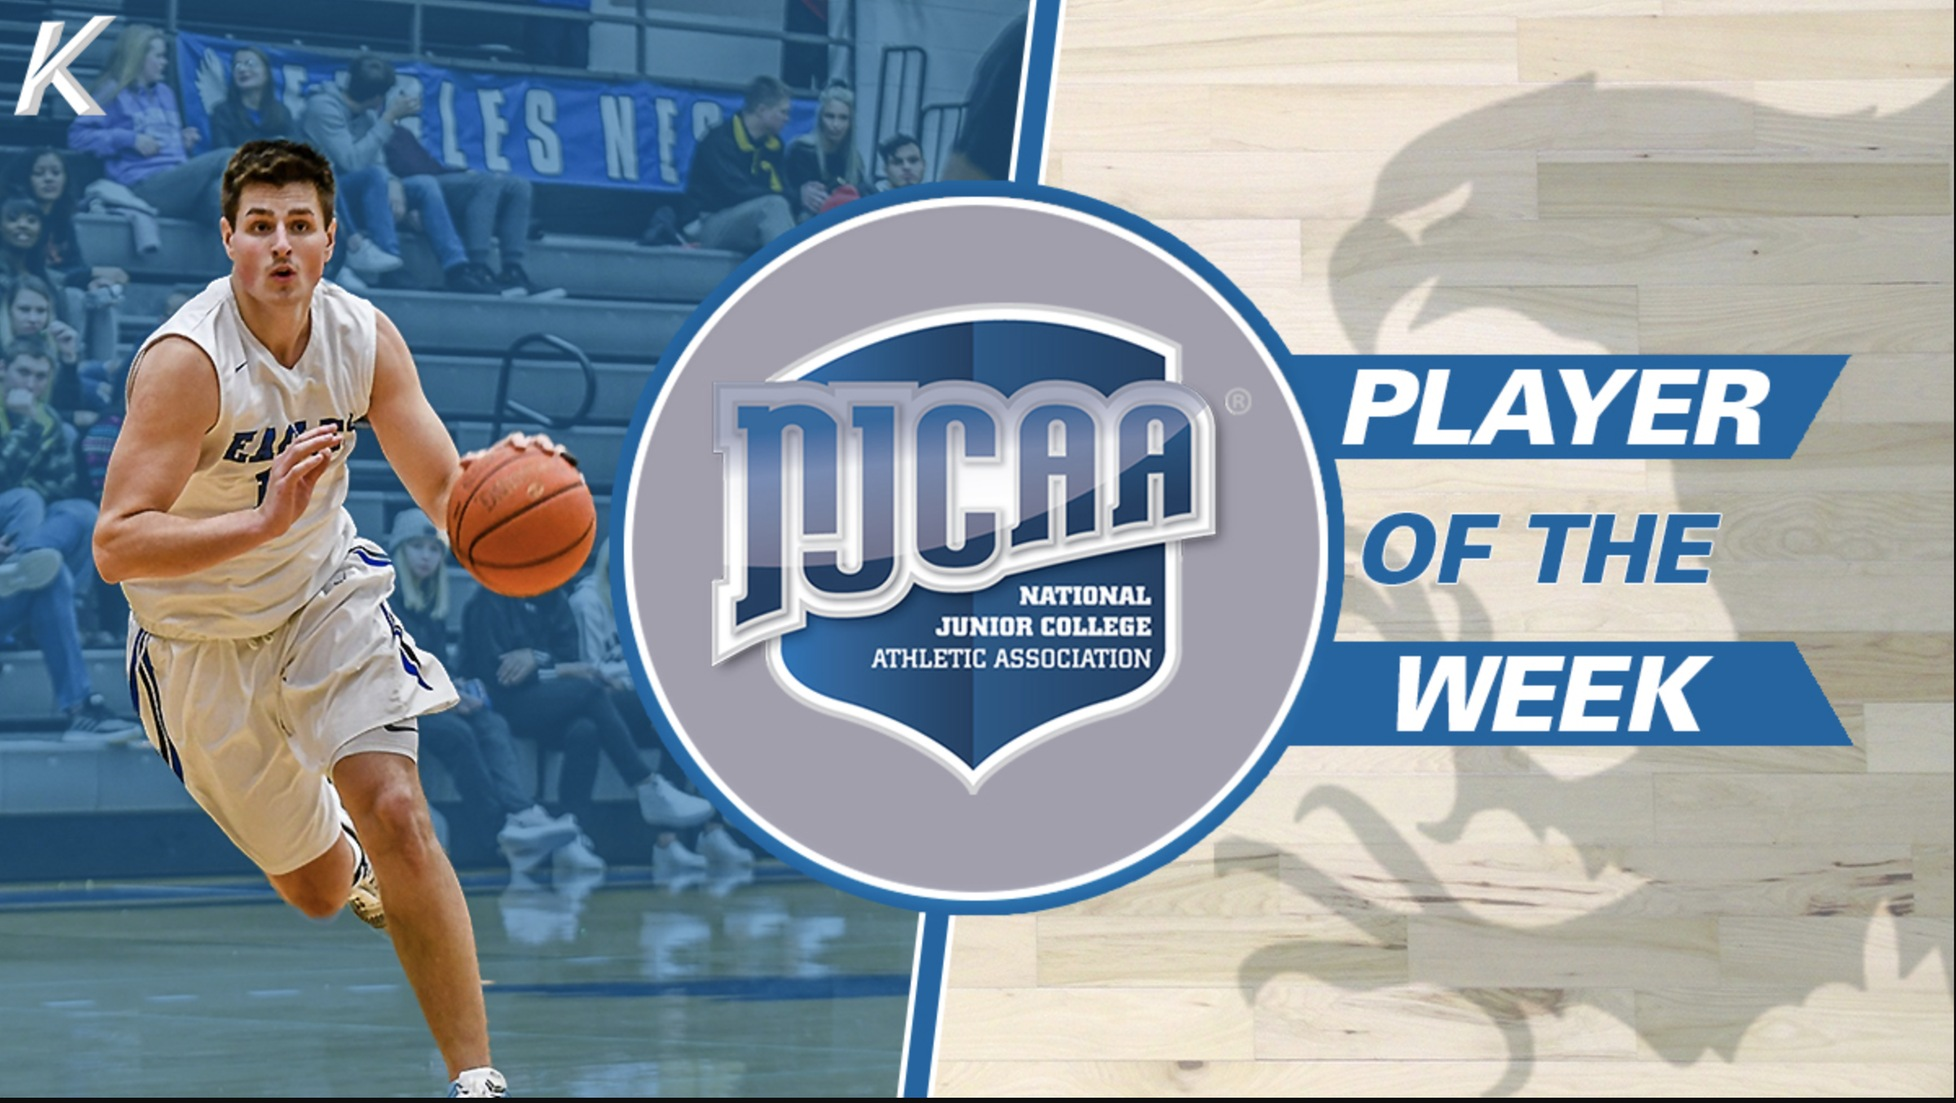 Appel named NJCAA Dll Player of the Week